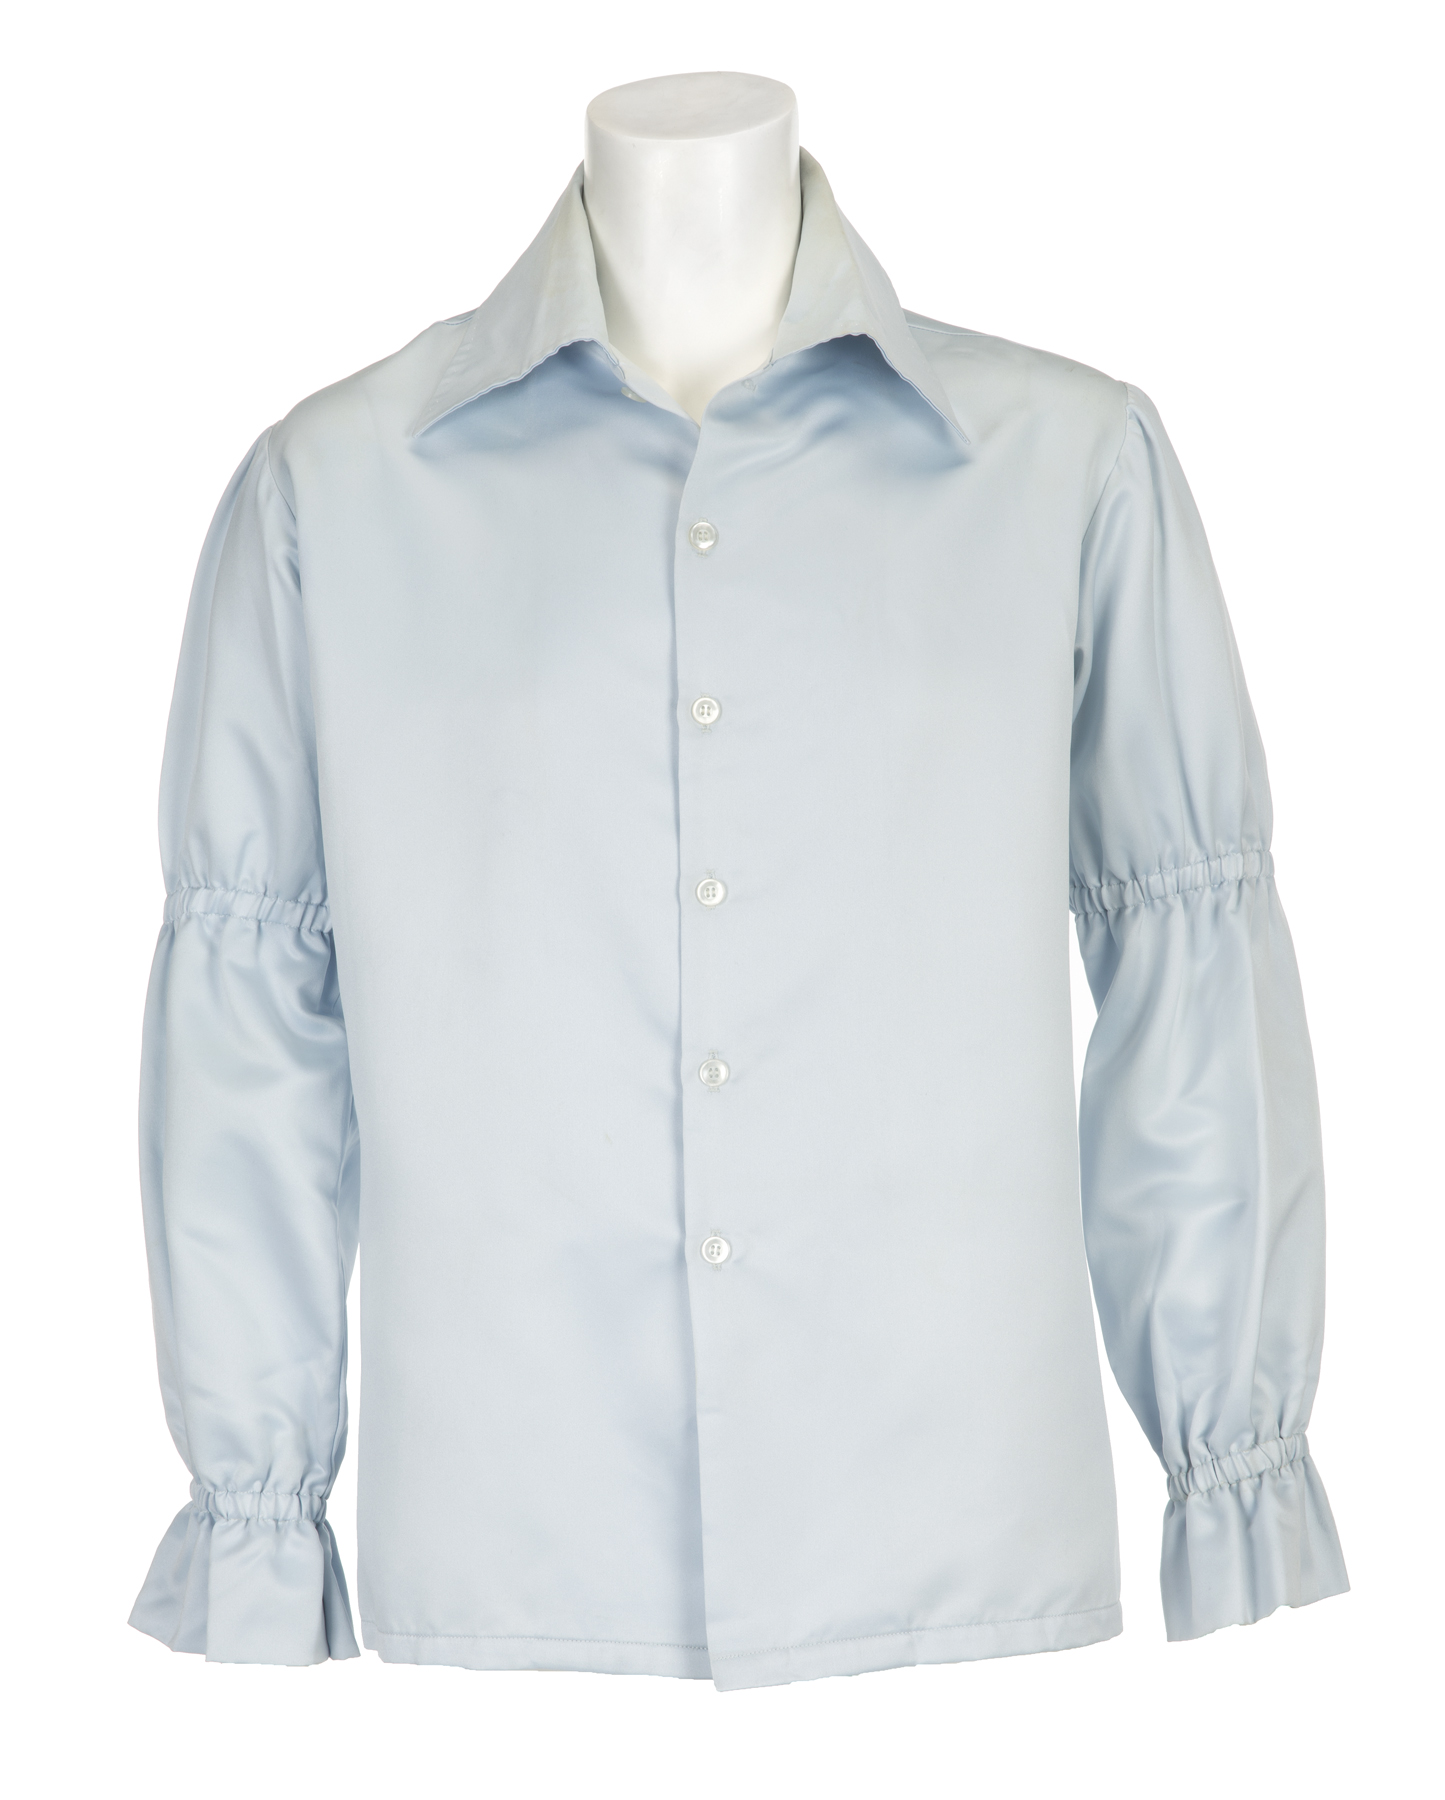 ELVIS PRESLEY POWDER BLUE SHIRT An Elvis Presley worn powder blue ...